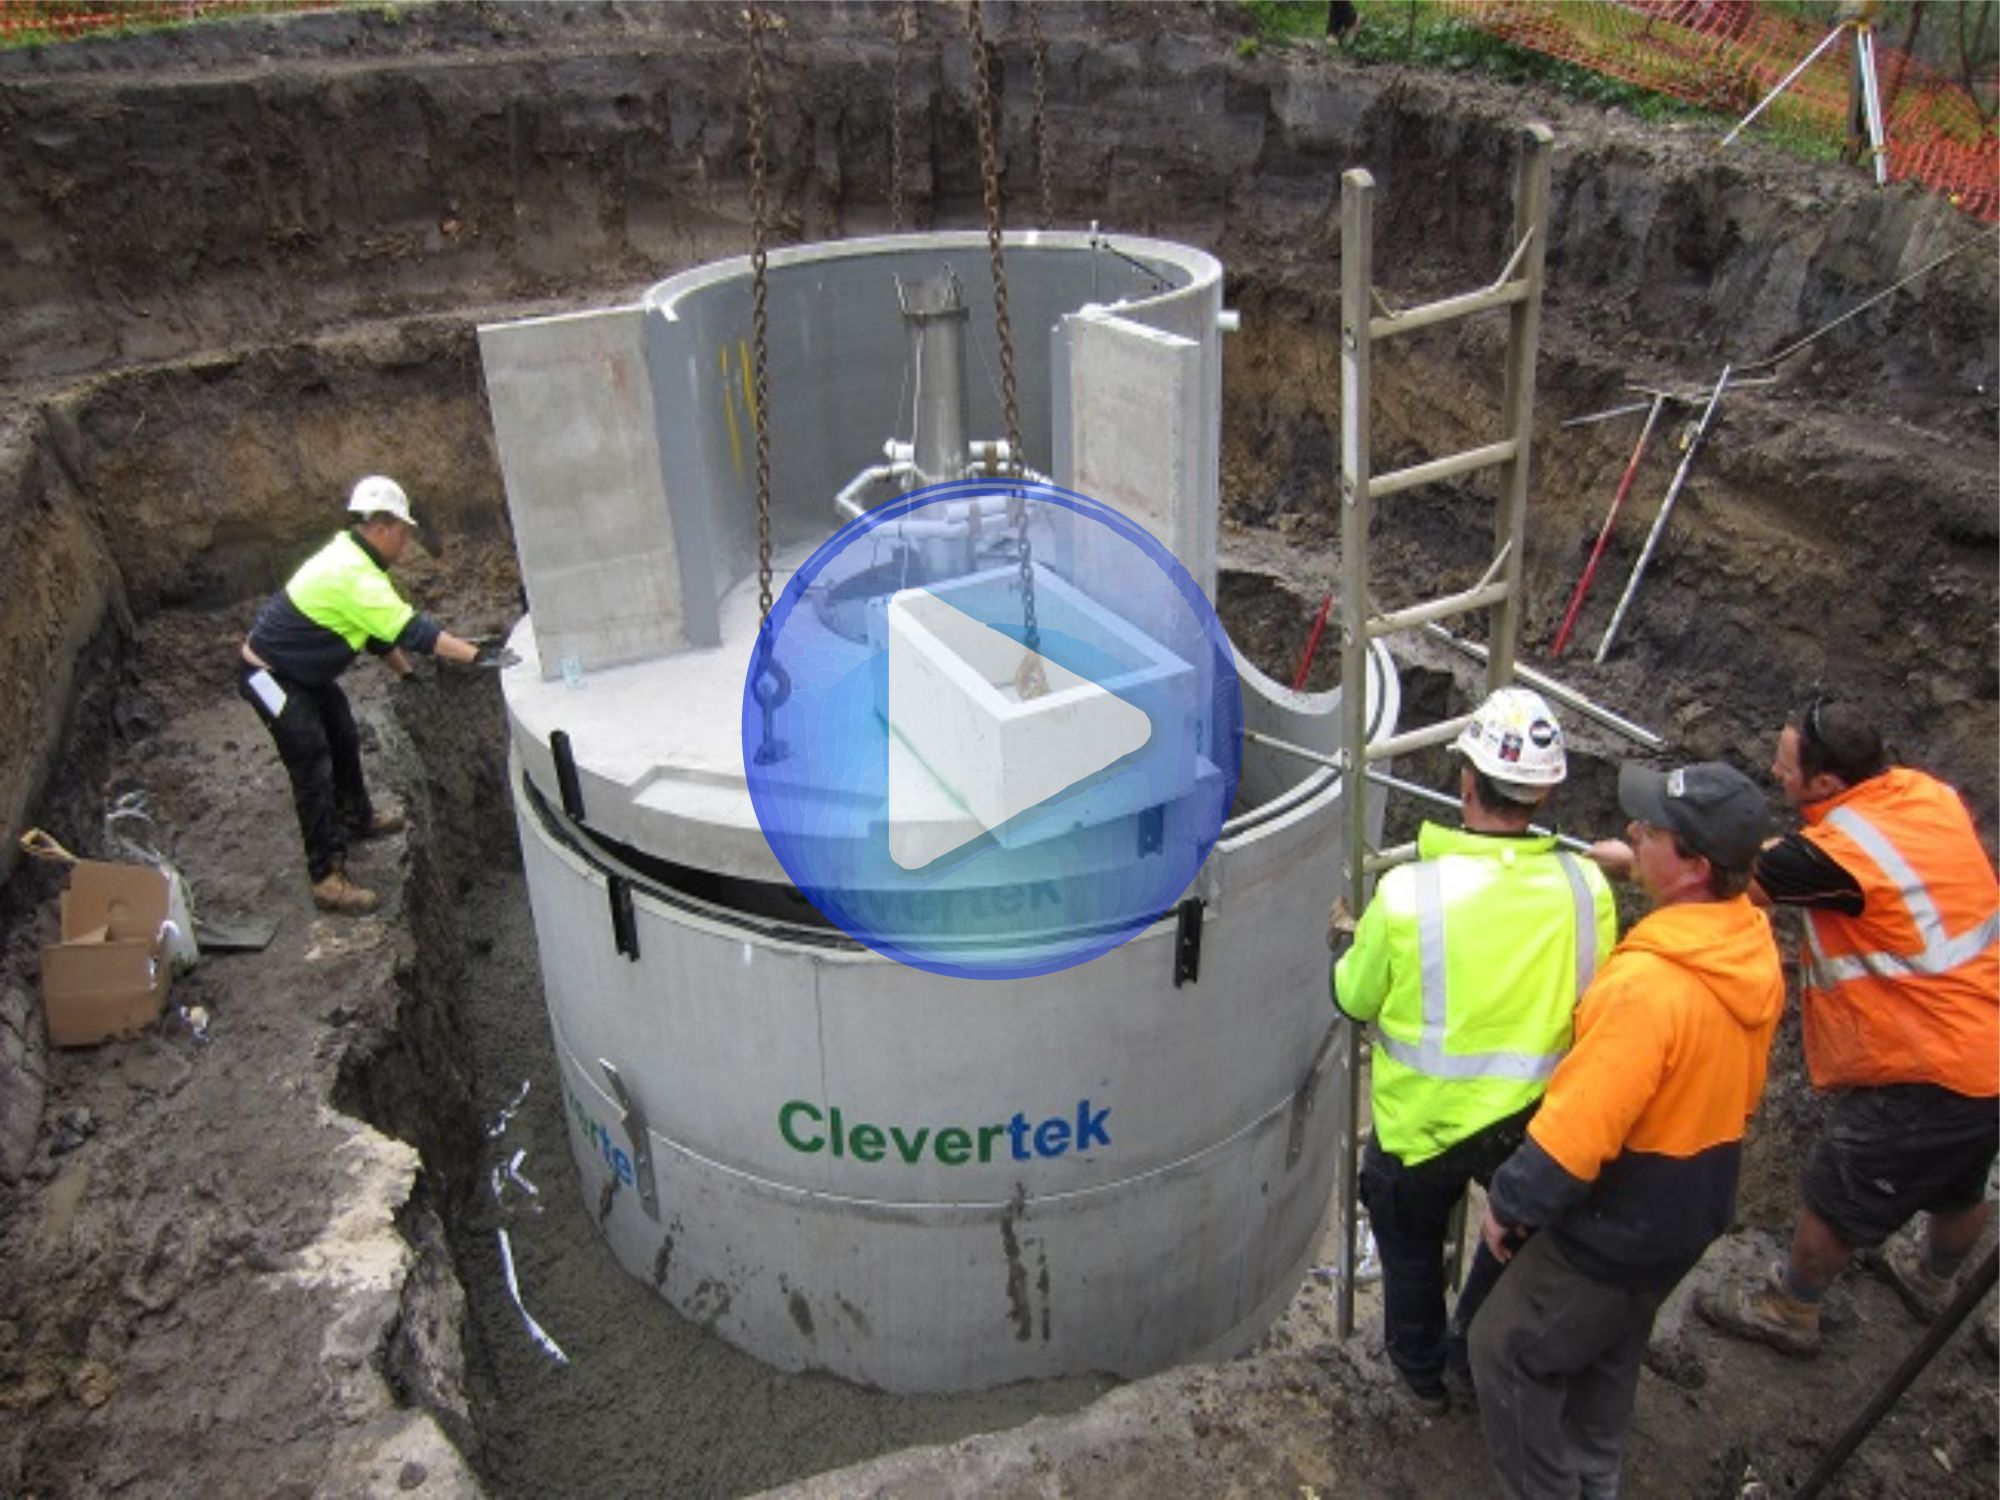 Clevertek CLT-004P Dragon Scale Filtration (DSF) Gross Pollutant Trap (GPT) Stormwater Treatment Installation